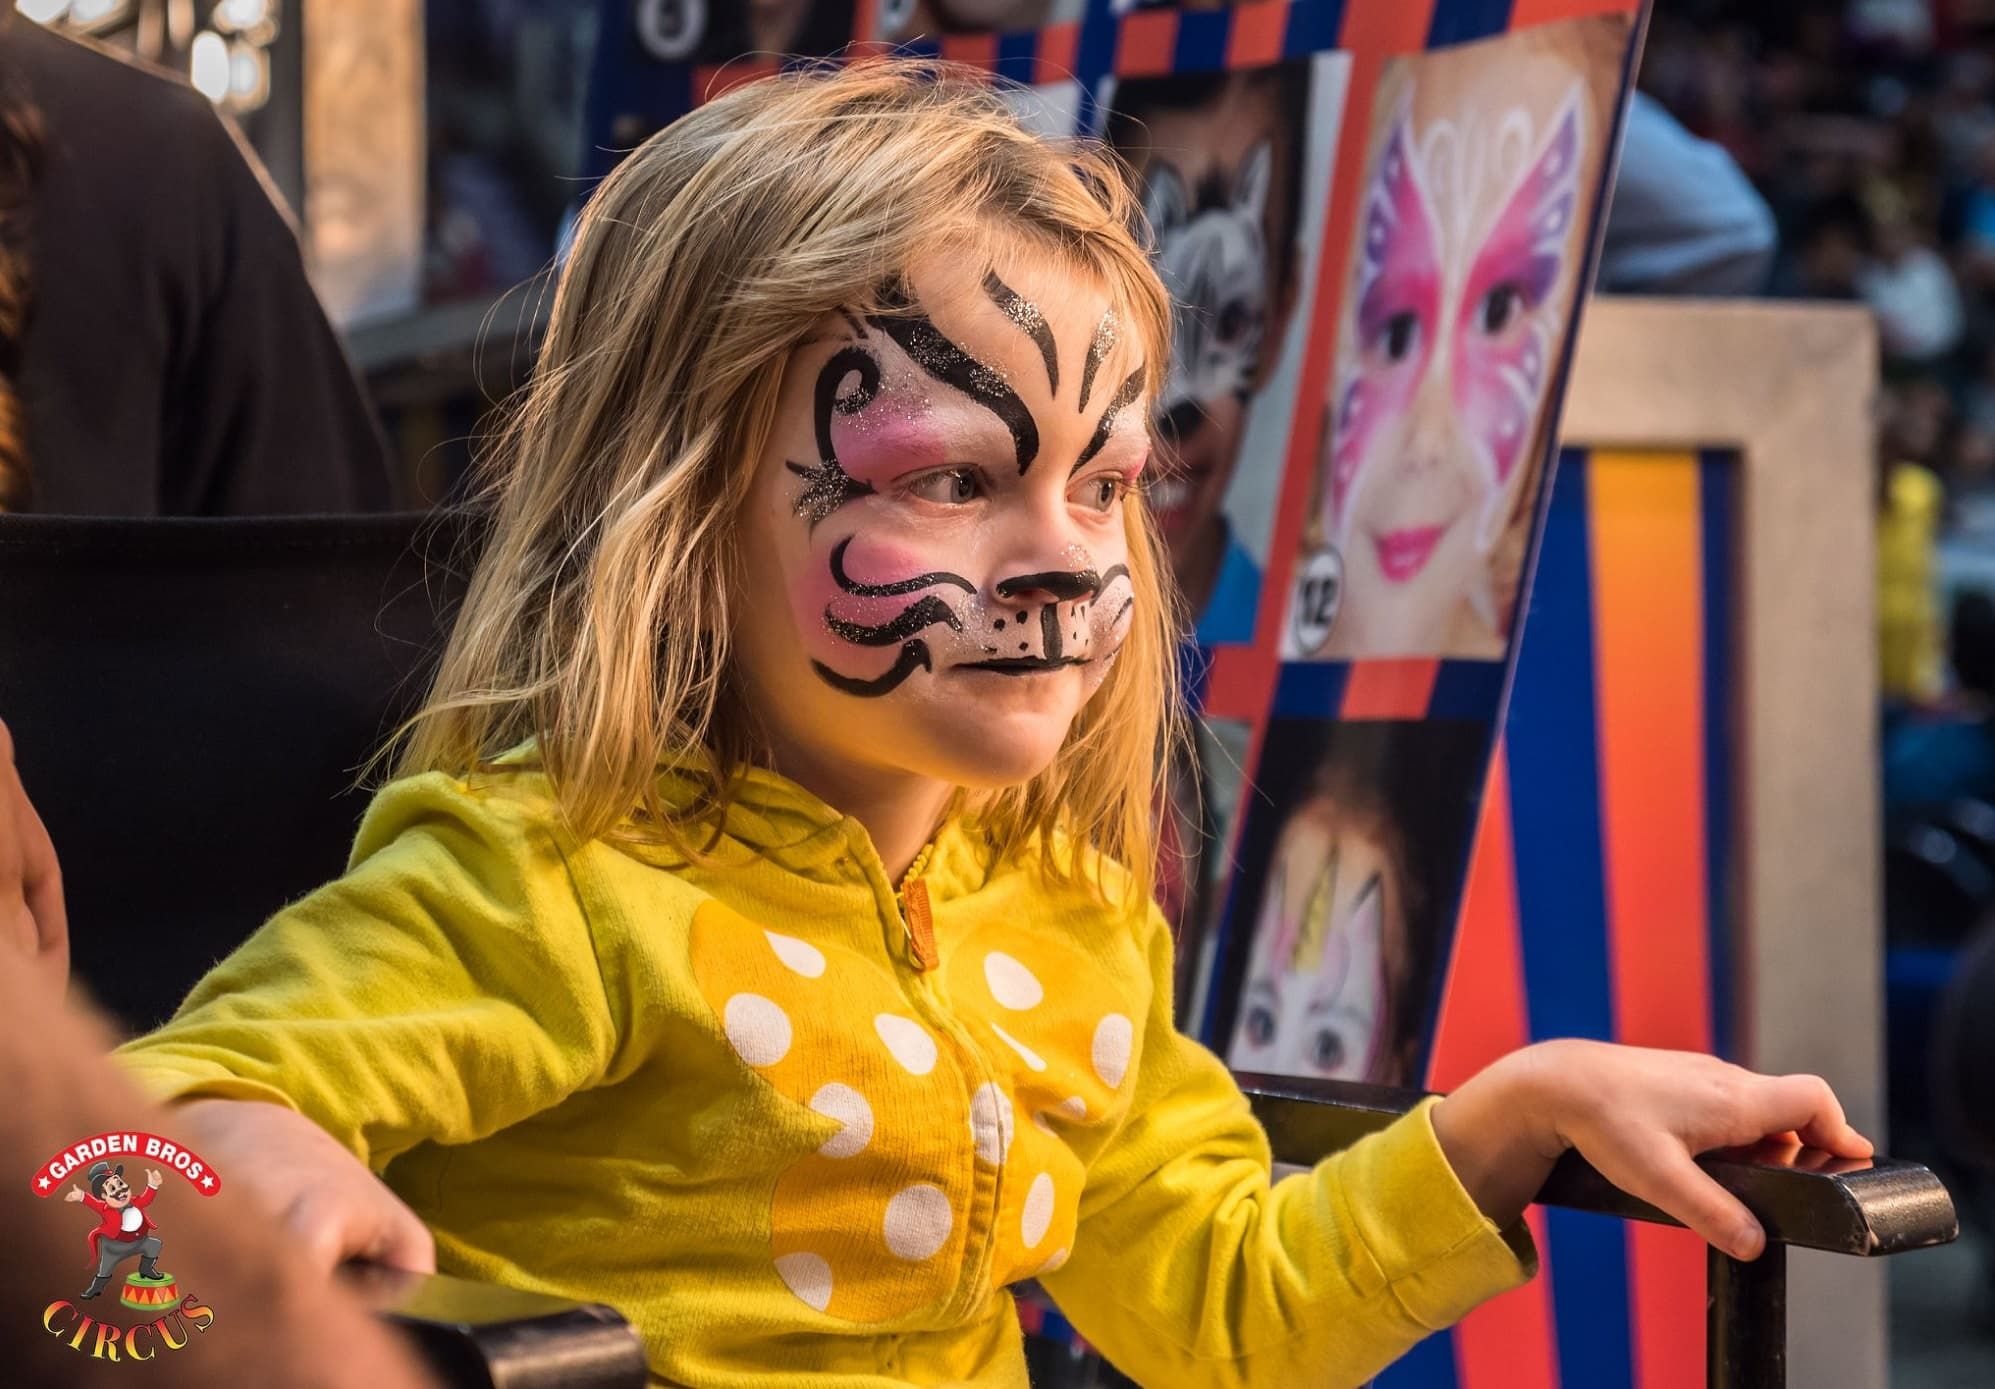 child with face paint at Garden Bros Circus event